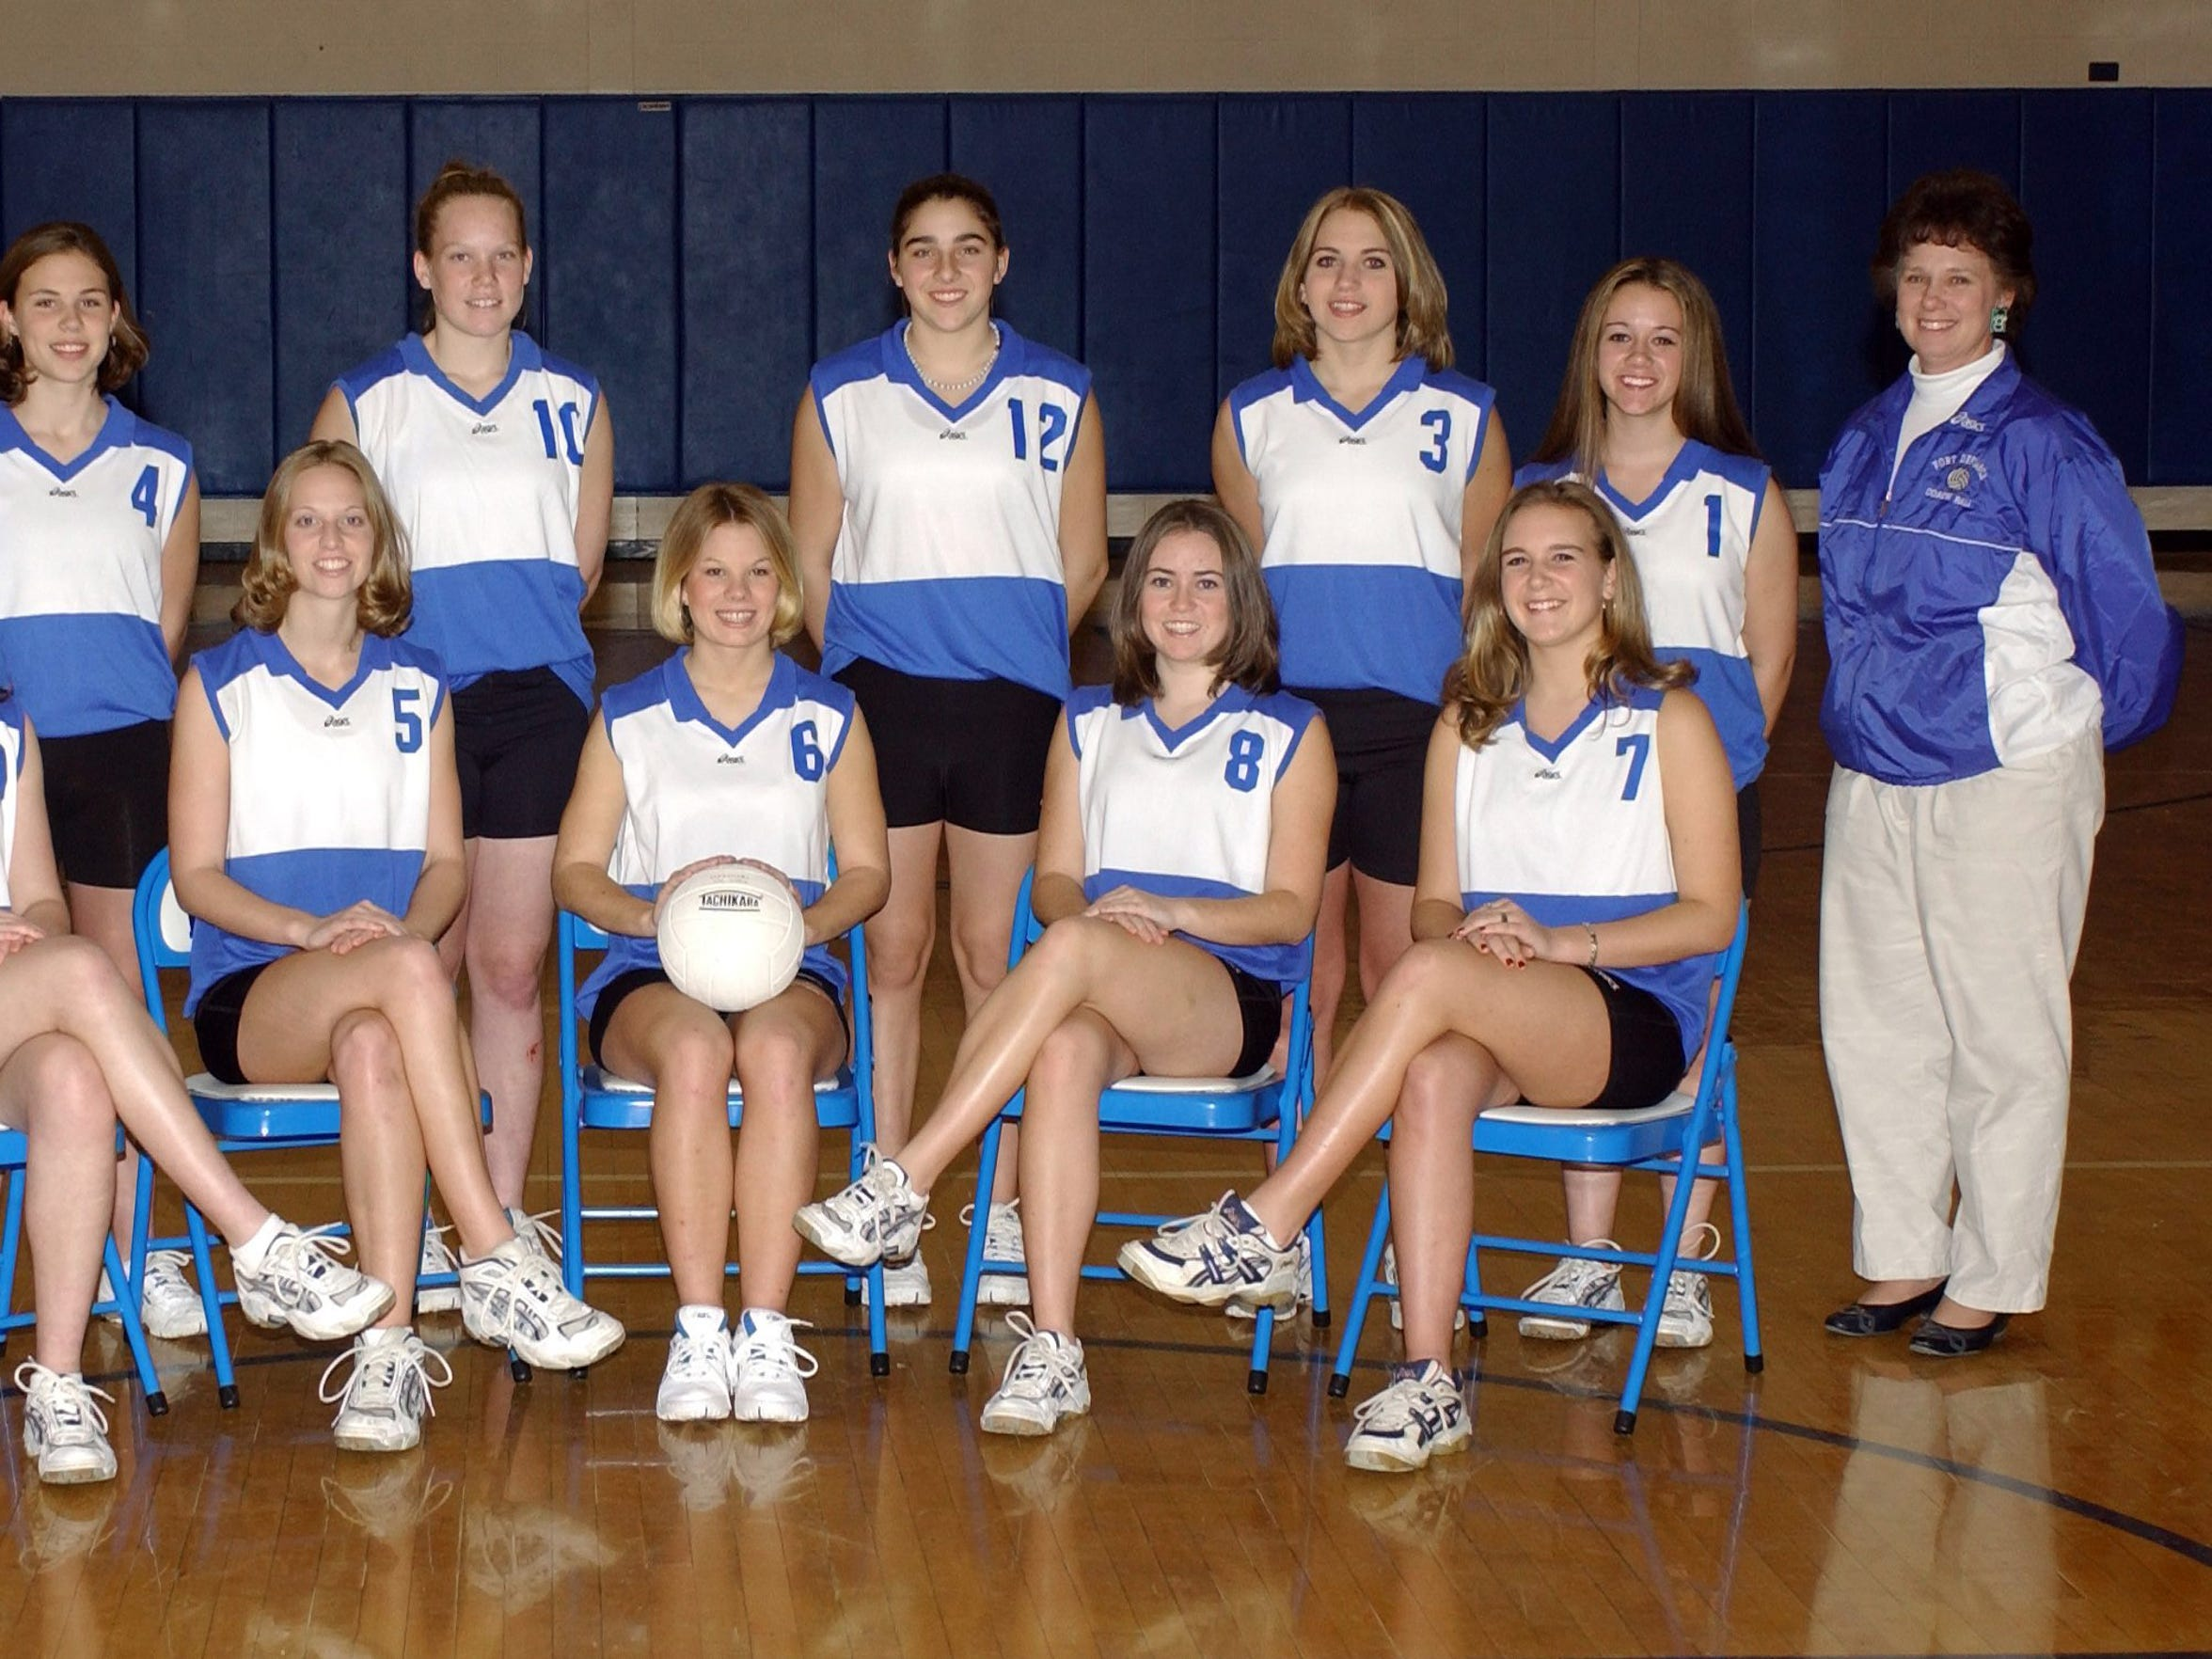 Bonnie Ball, top right, with the 2002 Fort Defiance